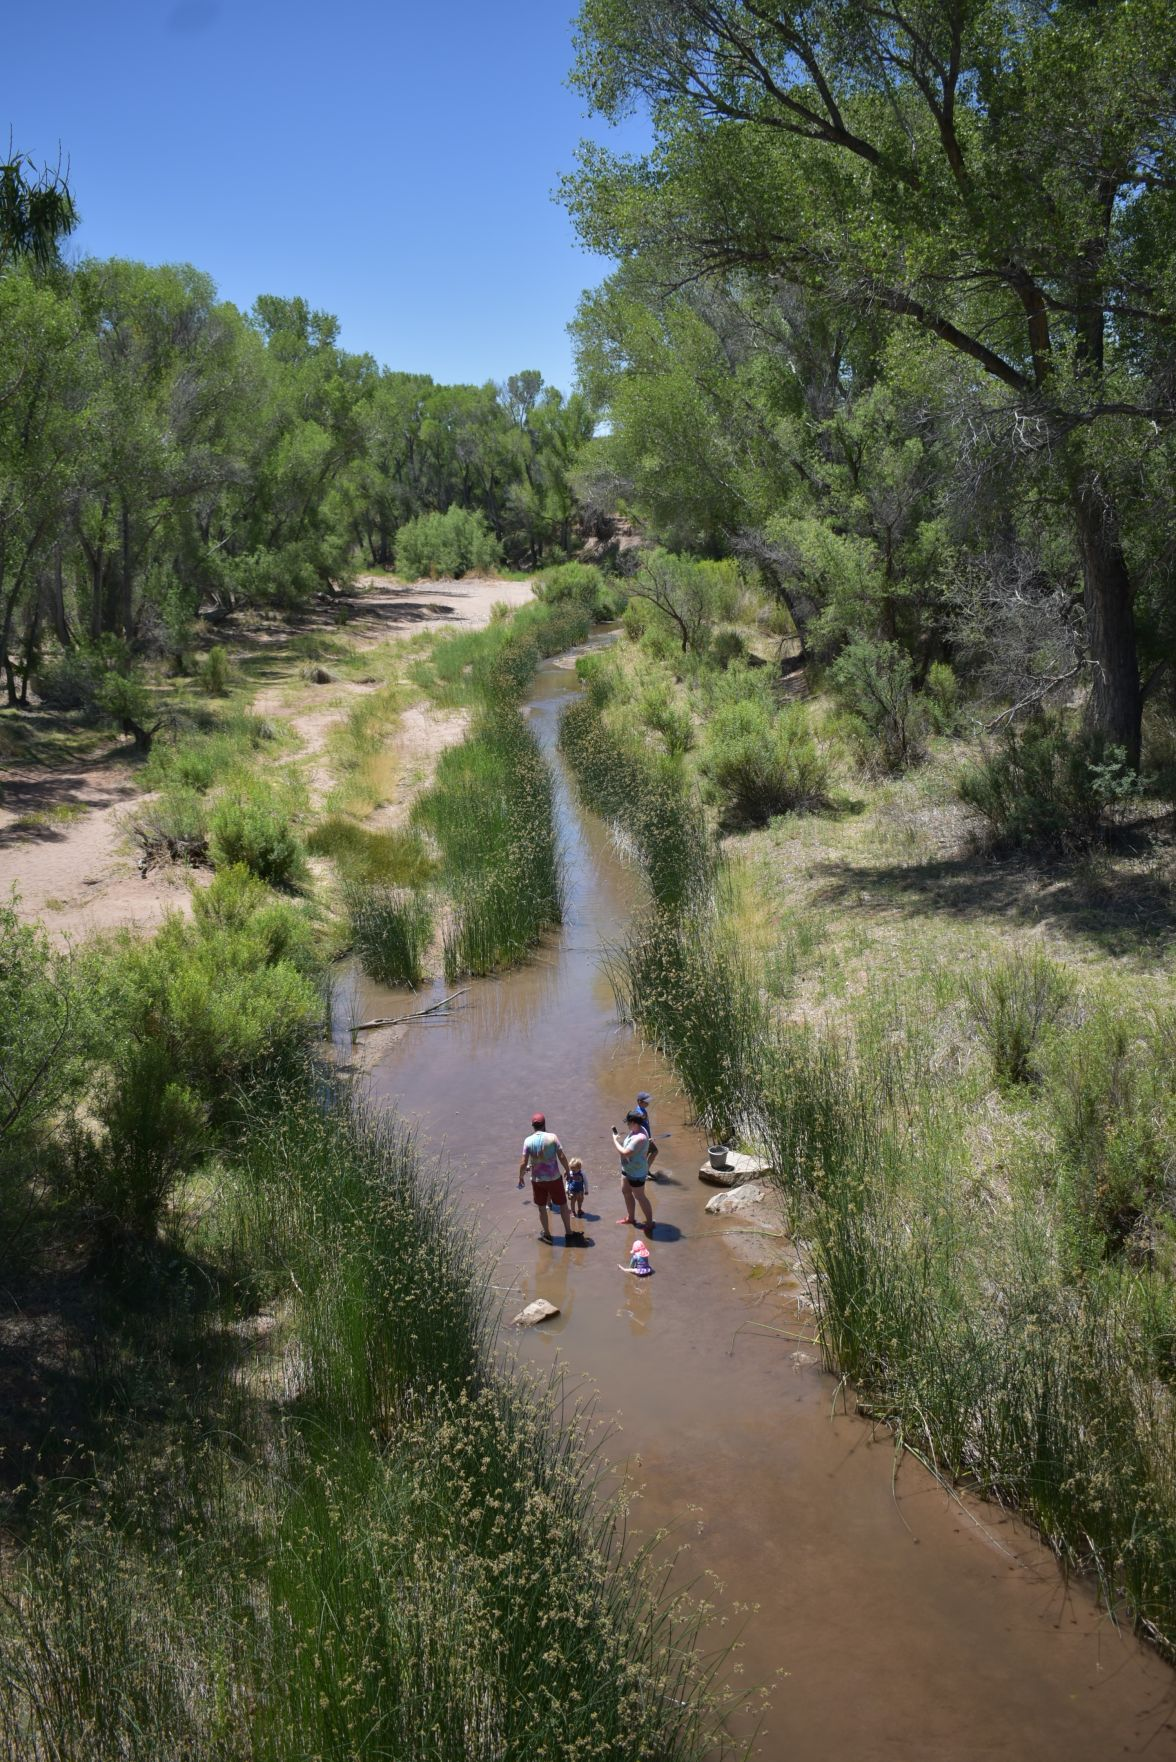 Wet/dry mapping volunteers report more water in river